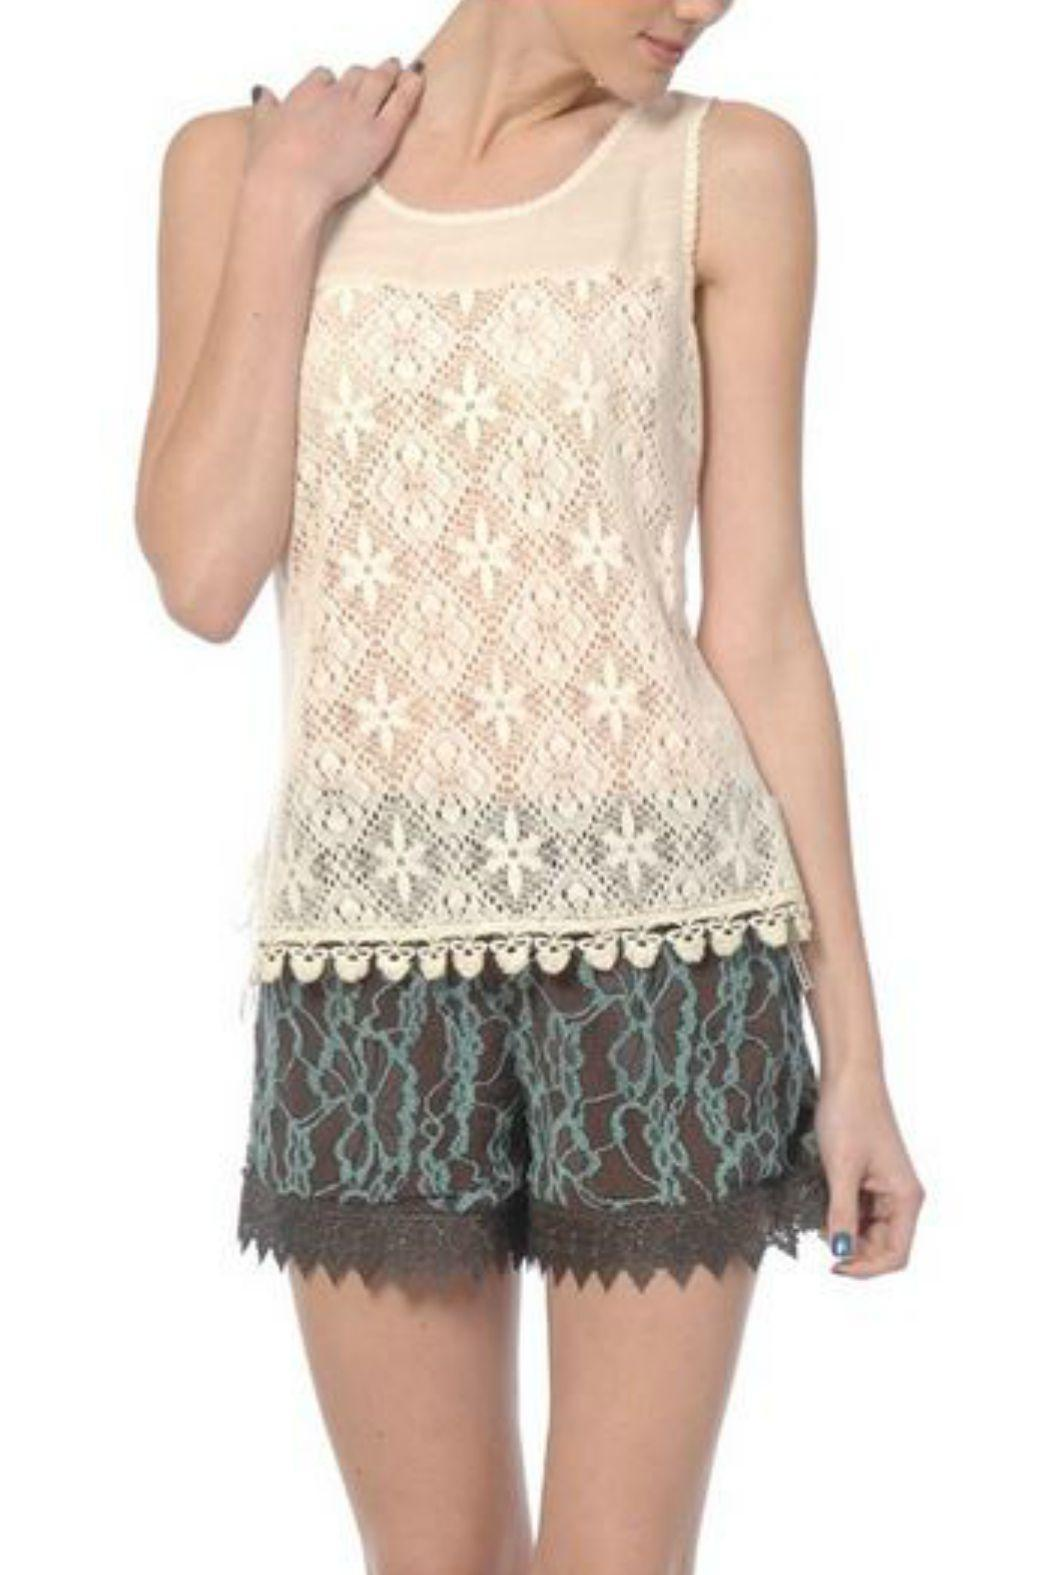 A'reve Sleeveless Lace Top - Main Image